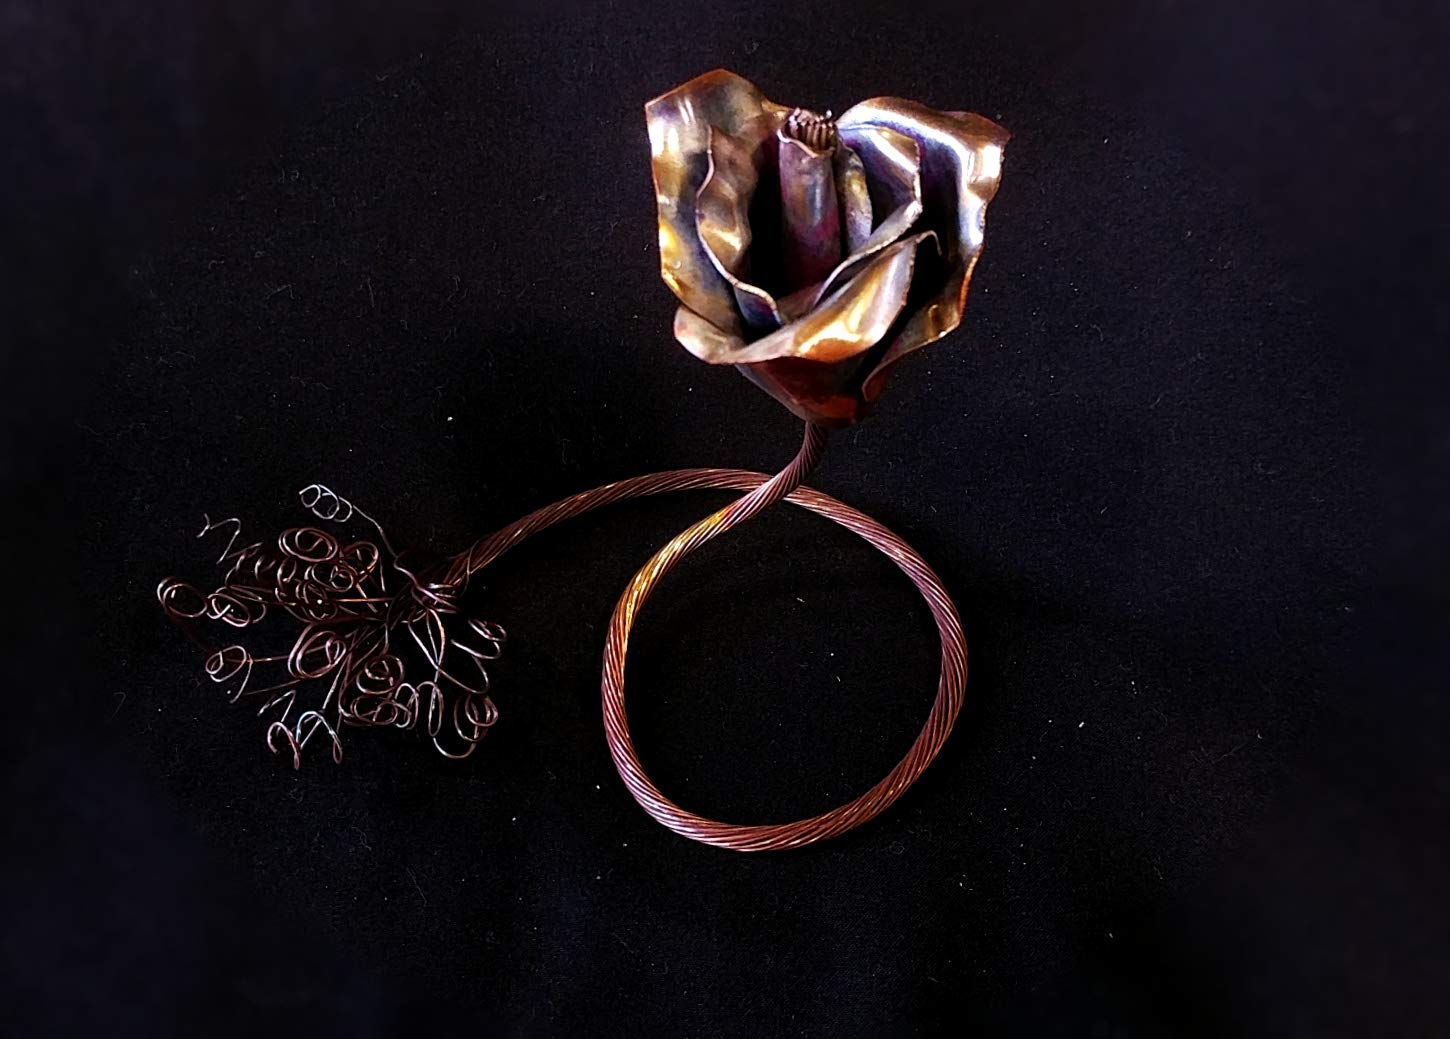 Copper Rose'' I Love You'' #1552 Steampunk Industrial birthday 7th Anniversary Unique Mother's Day Valentine's Day Christmas present